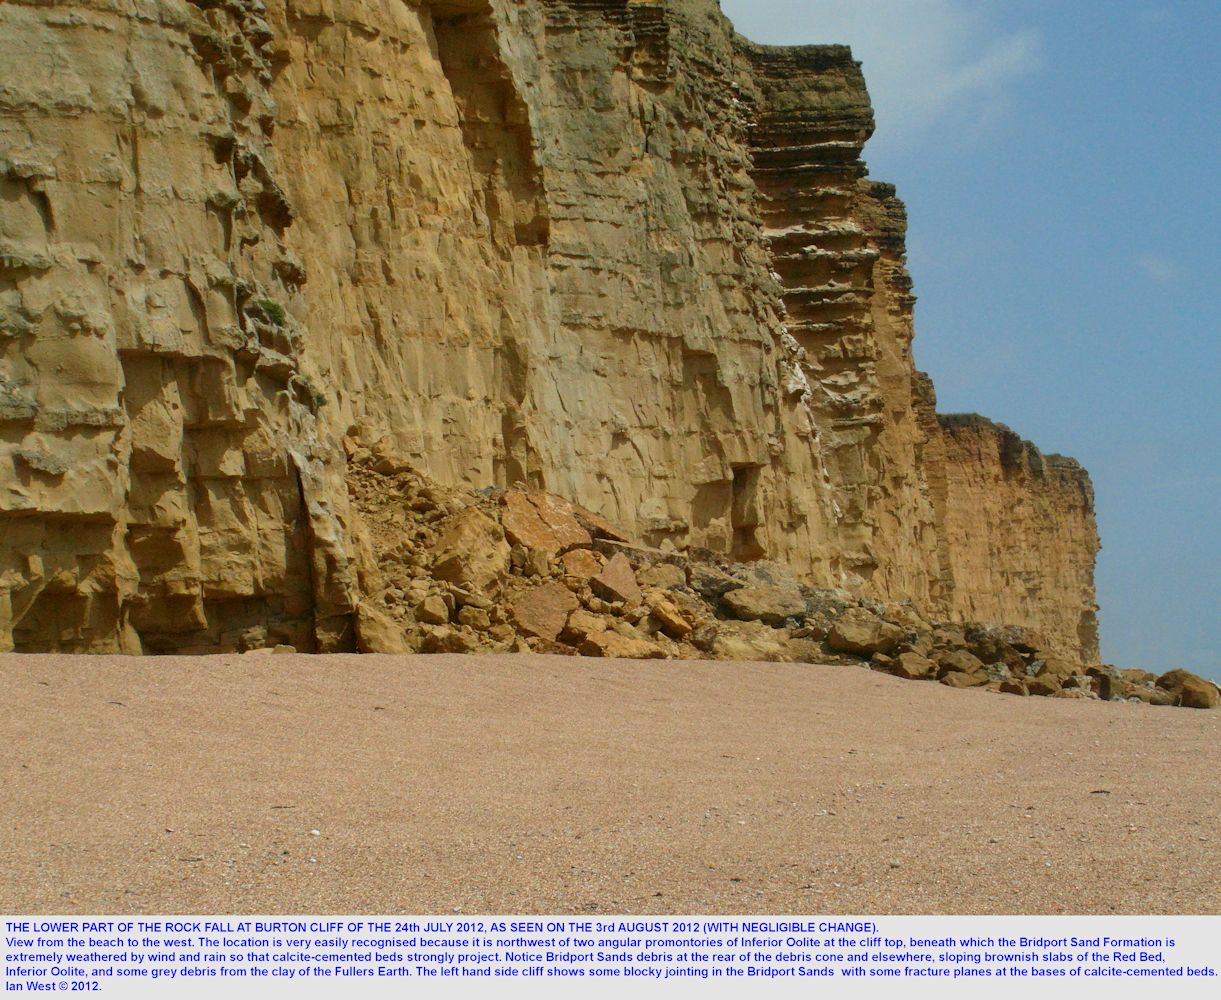 Details of the lower part of the rock fall of the 24th July 2012, Burton Cliff, Burton Bradstock, as seen on the 3rd August 2012